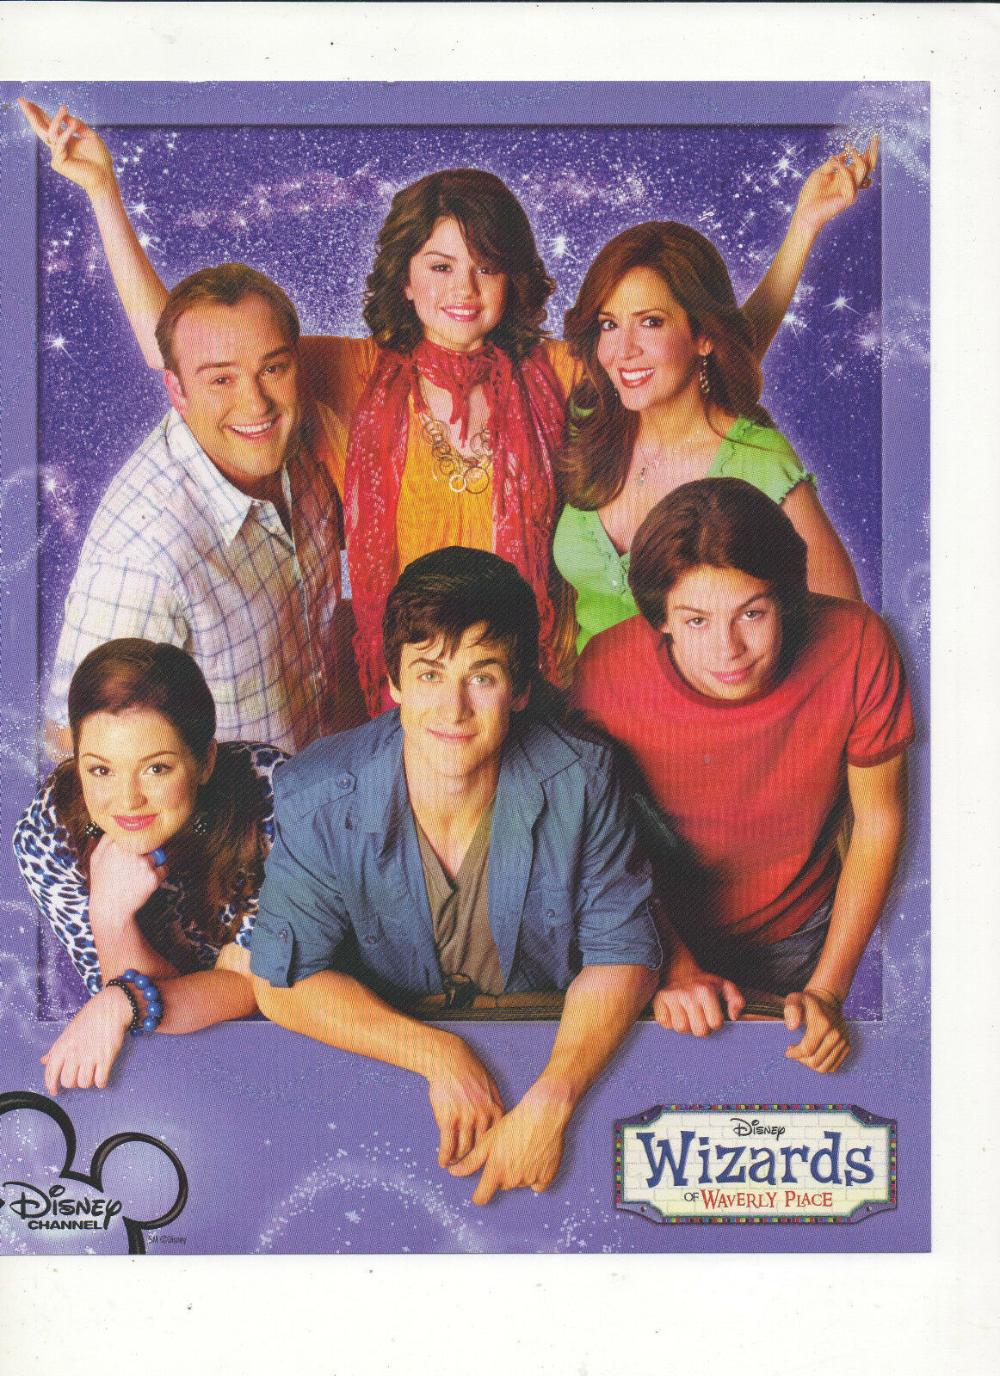 Wizards Of Waverly Place Cast Photograph Selena Gomez David Henrie More U Pick Wizards Of Waverly Place Waverly Place Wizards Of Waverly